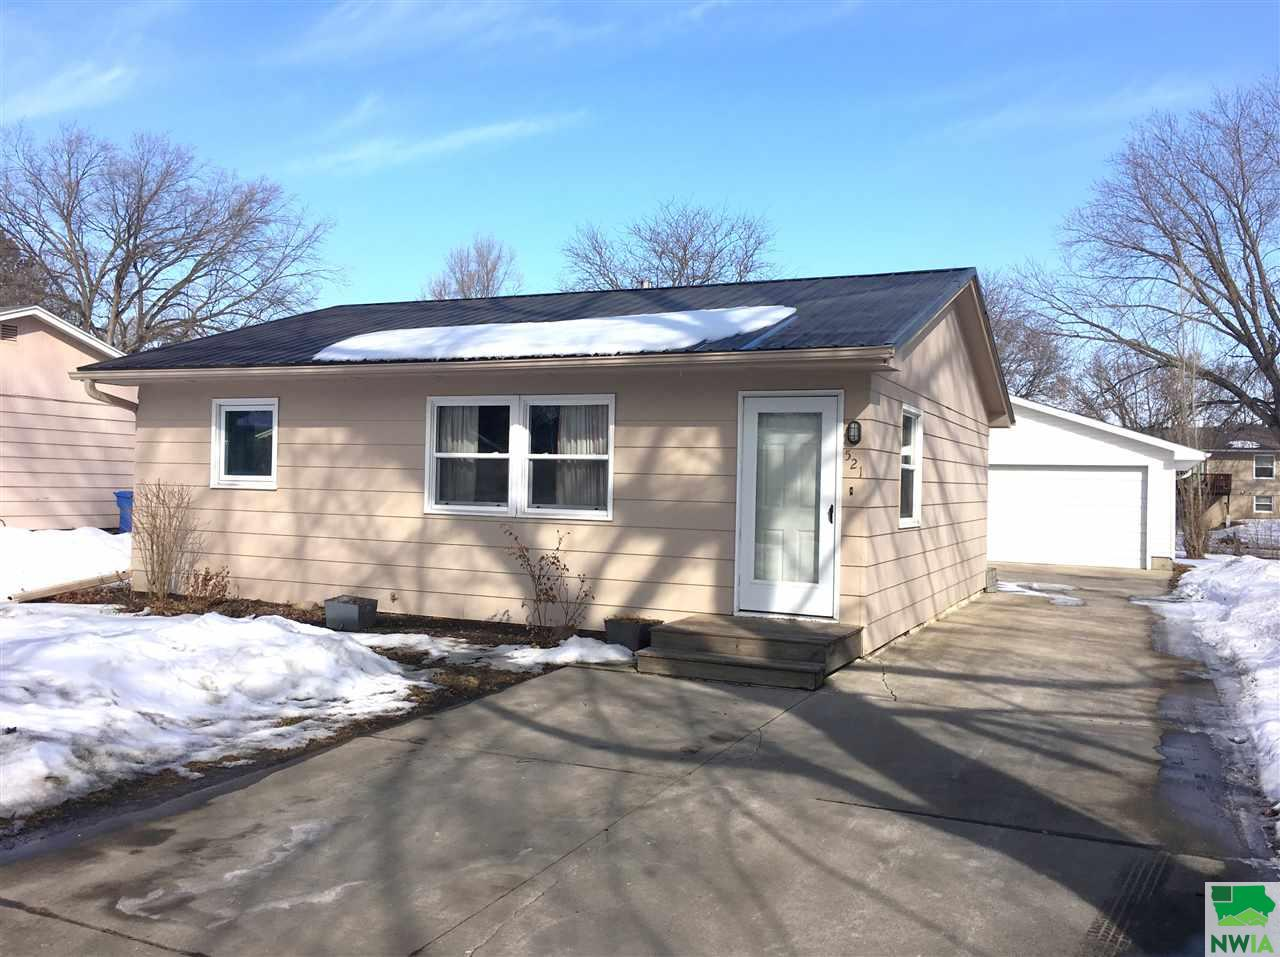 Property for sale at 521 W Clark, Vermillion,  SD 57069